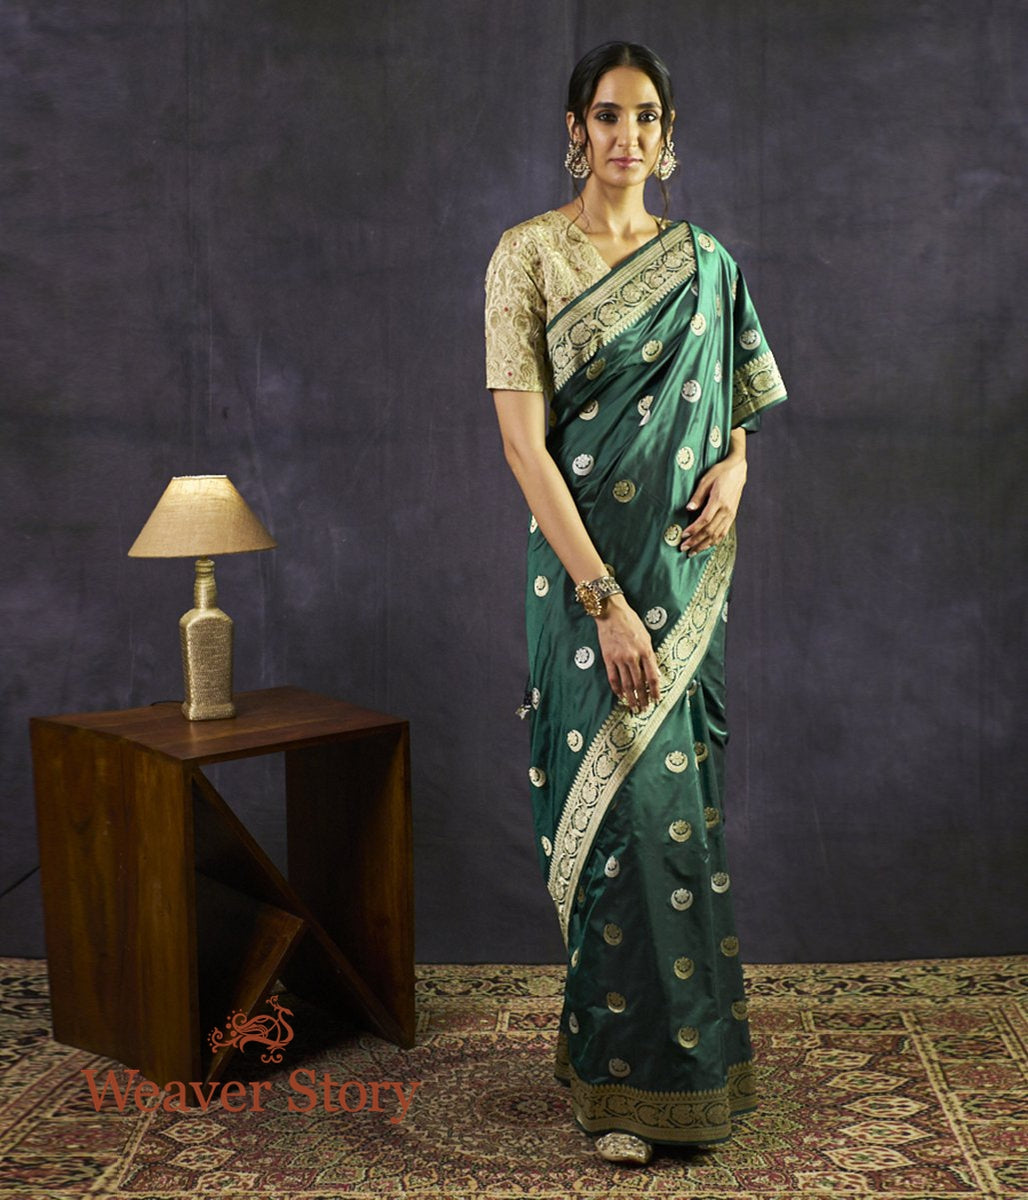 Handwoven Green Chand Boota Saree with Lion Konia